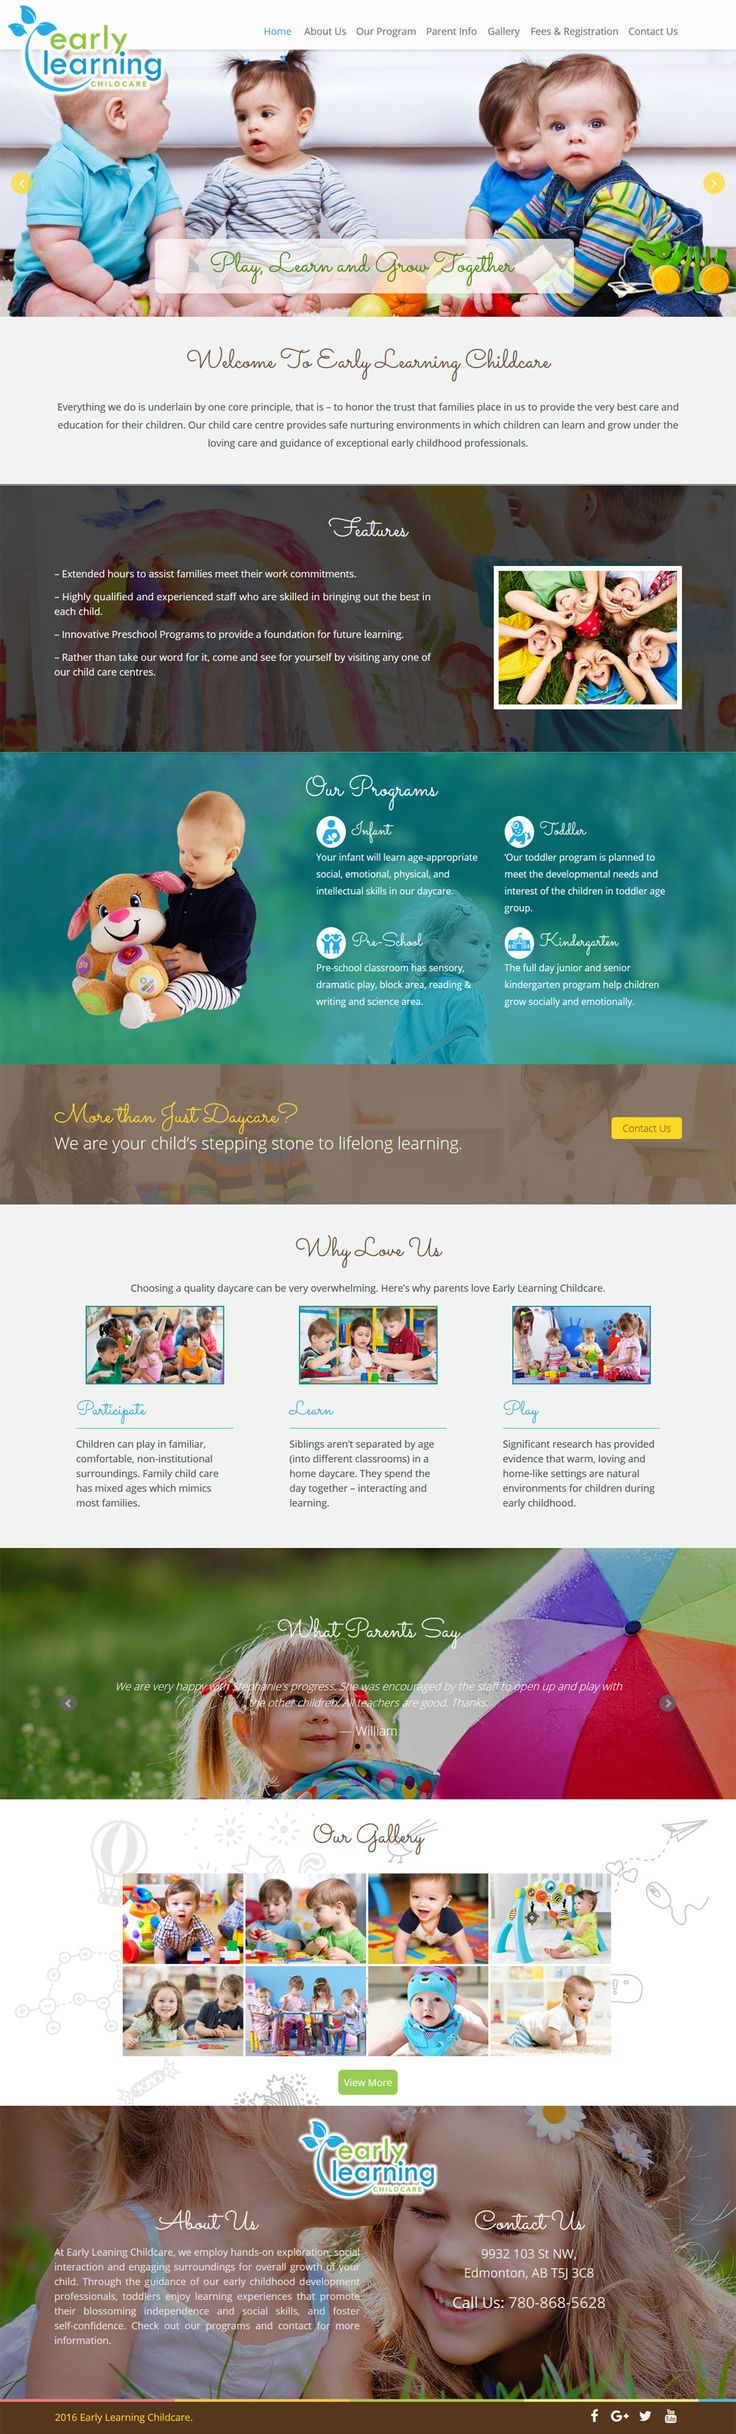 Get Custom #WordPress #Website in just 15 Days.Call Today!  Check out our #Website #PORTFOLIO For different #Business